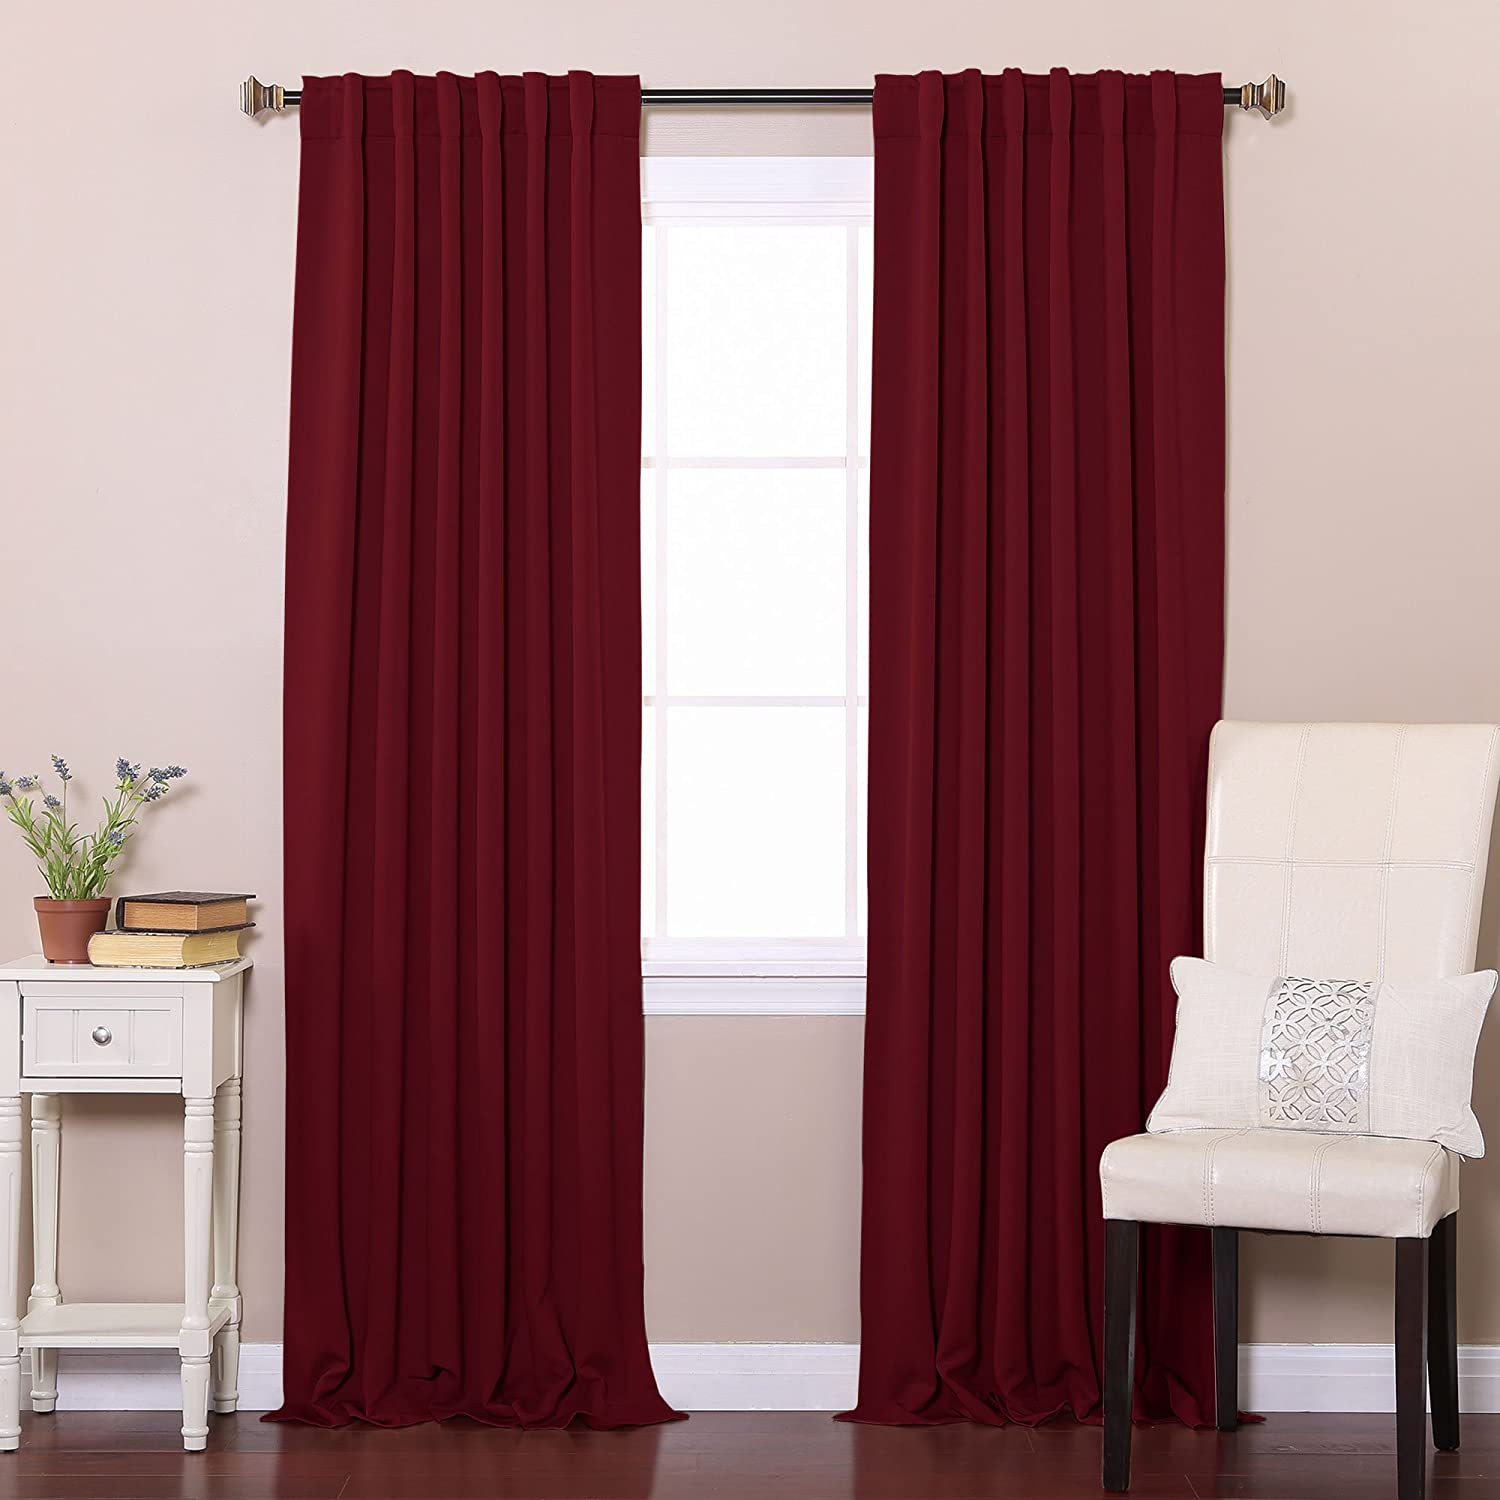 kitchen x lush image size com living thermal cheap awful curtains full for panel decor pom of concept curtain room window amazon